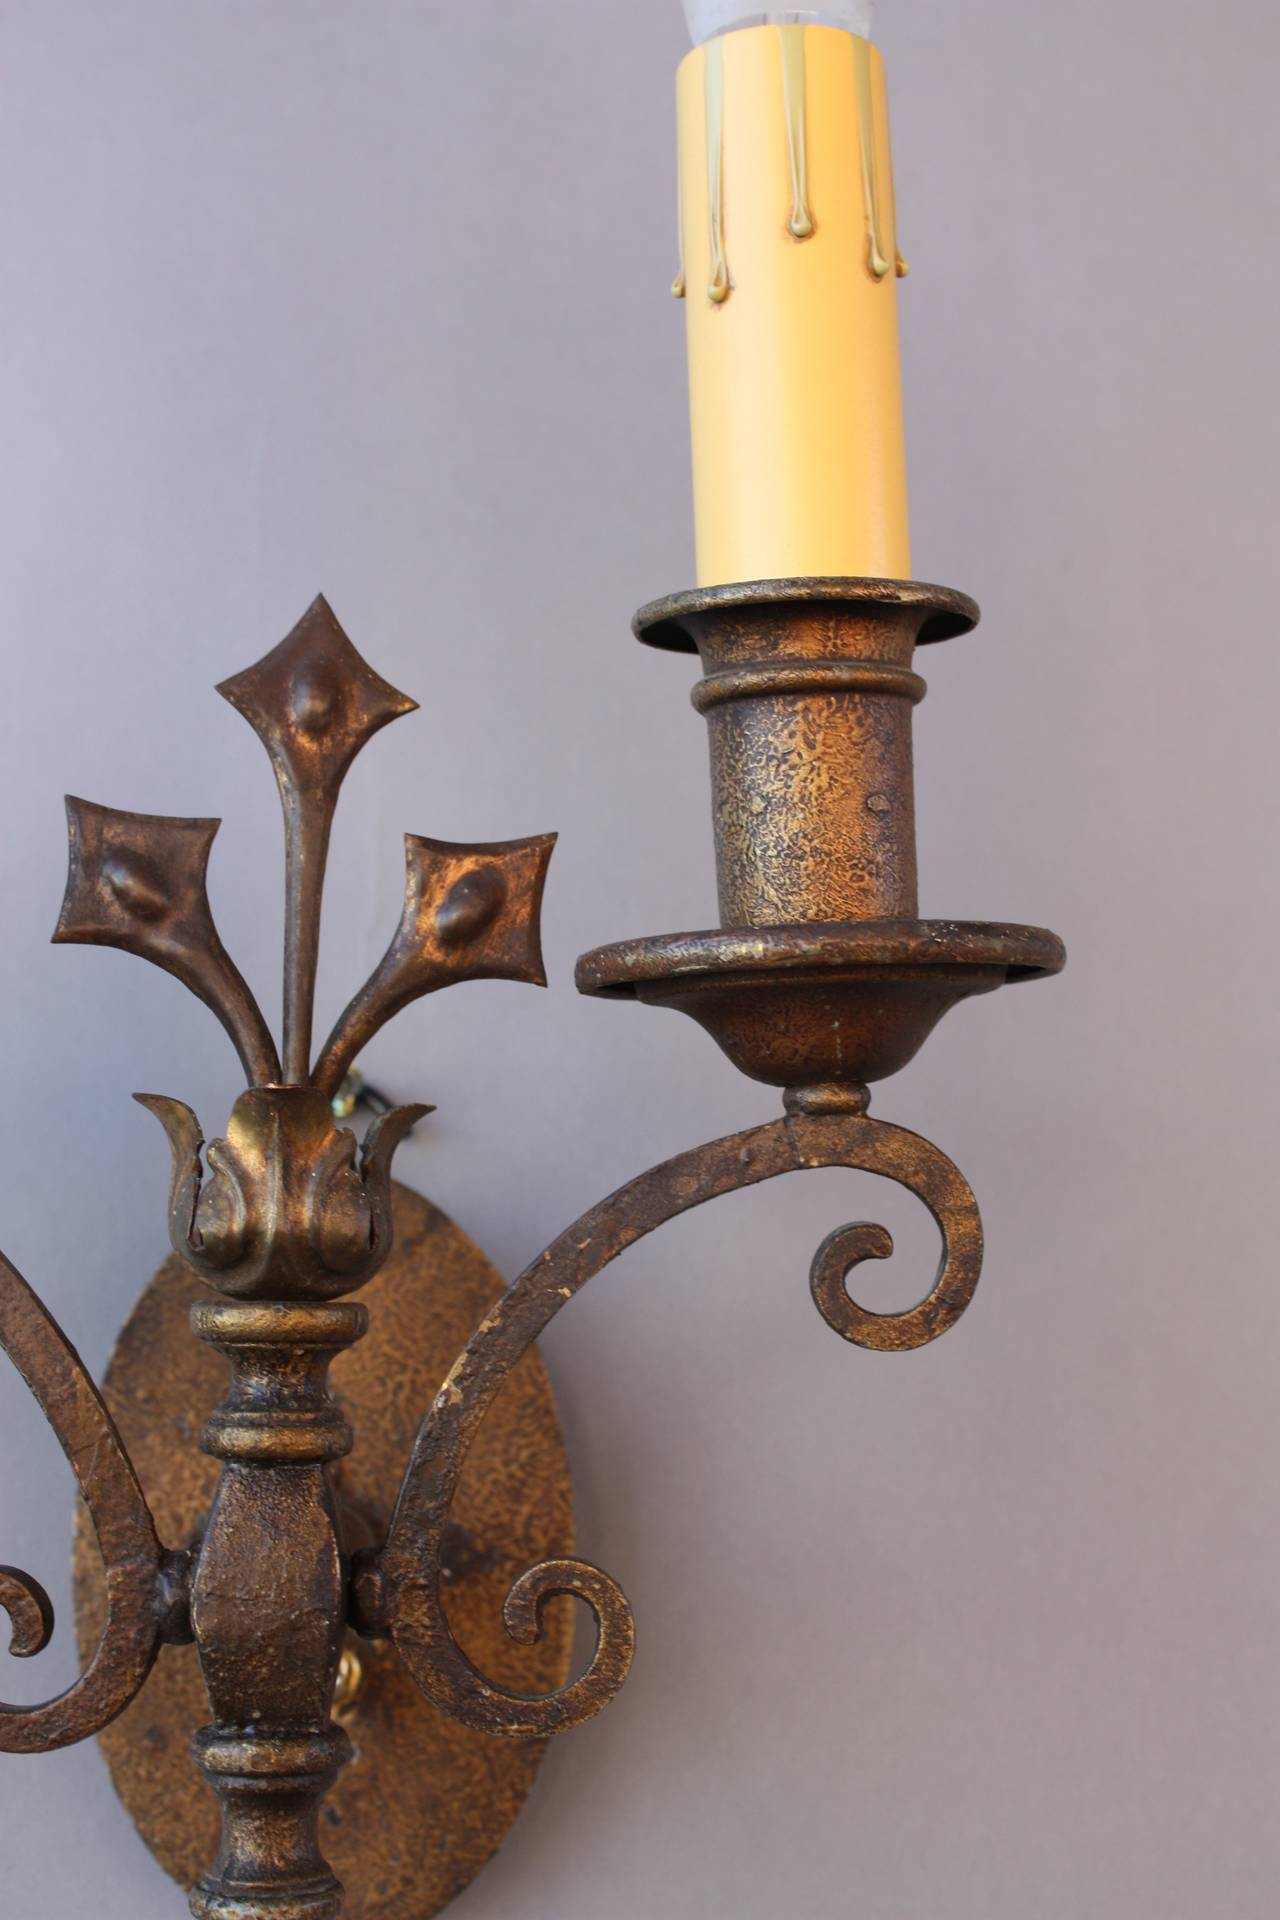 Wall Sconces En Espanol : Pair of Outstanding Spanish Revival Sconces at 1stdibs